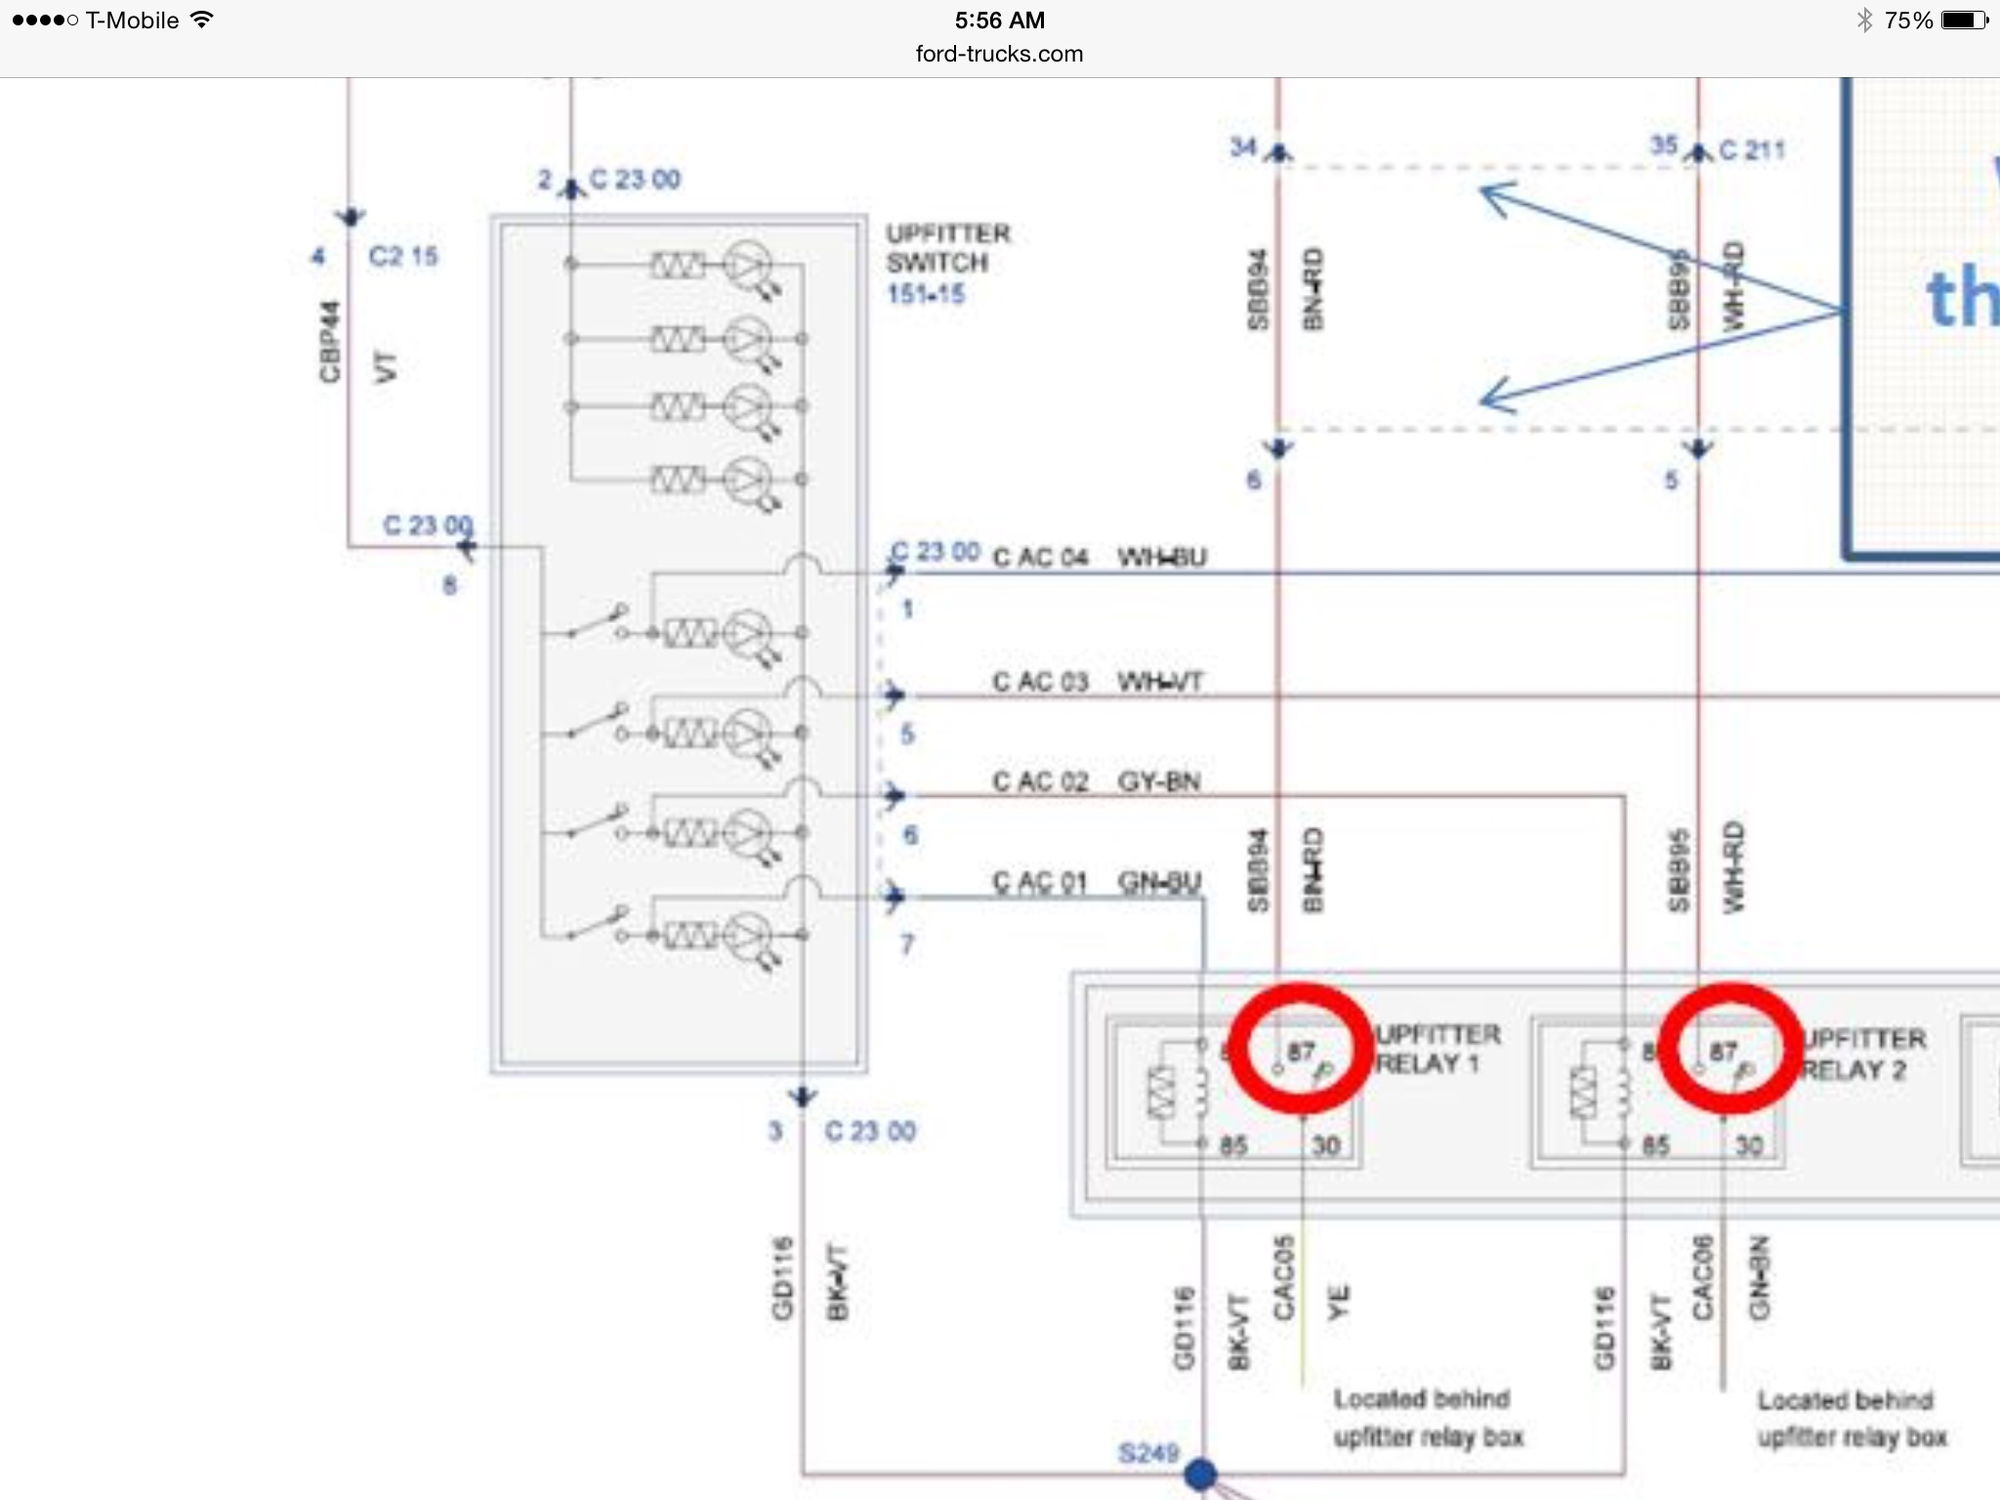 2017 F350 Upfitter Switch Wiring Diagram